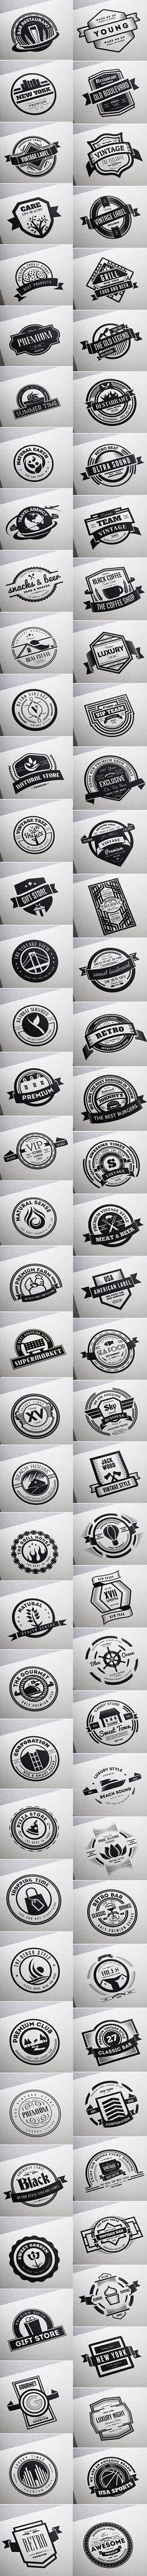 80 Vintage Labels & Badges Logos - Premium Bundle on Behance